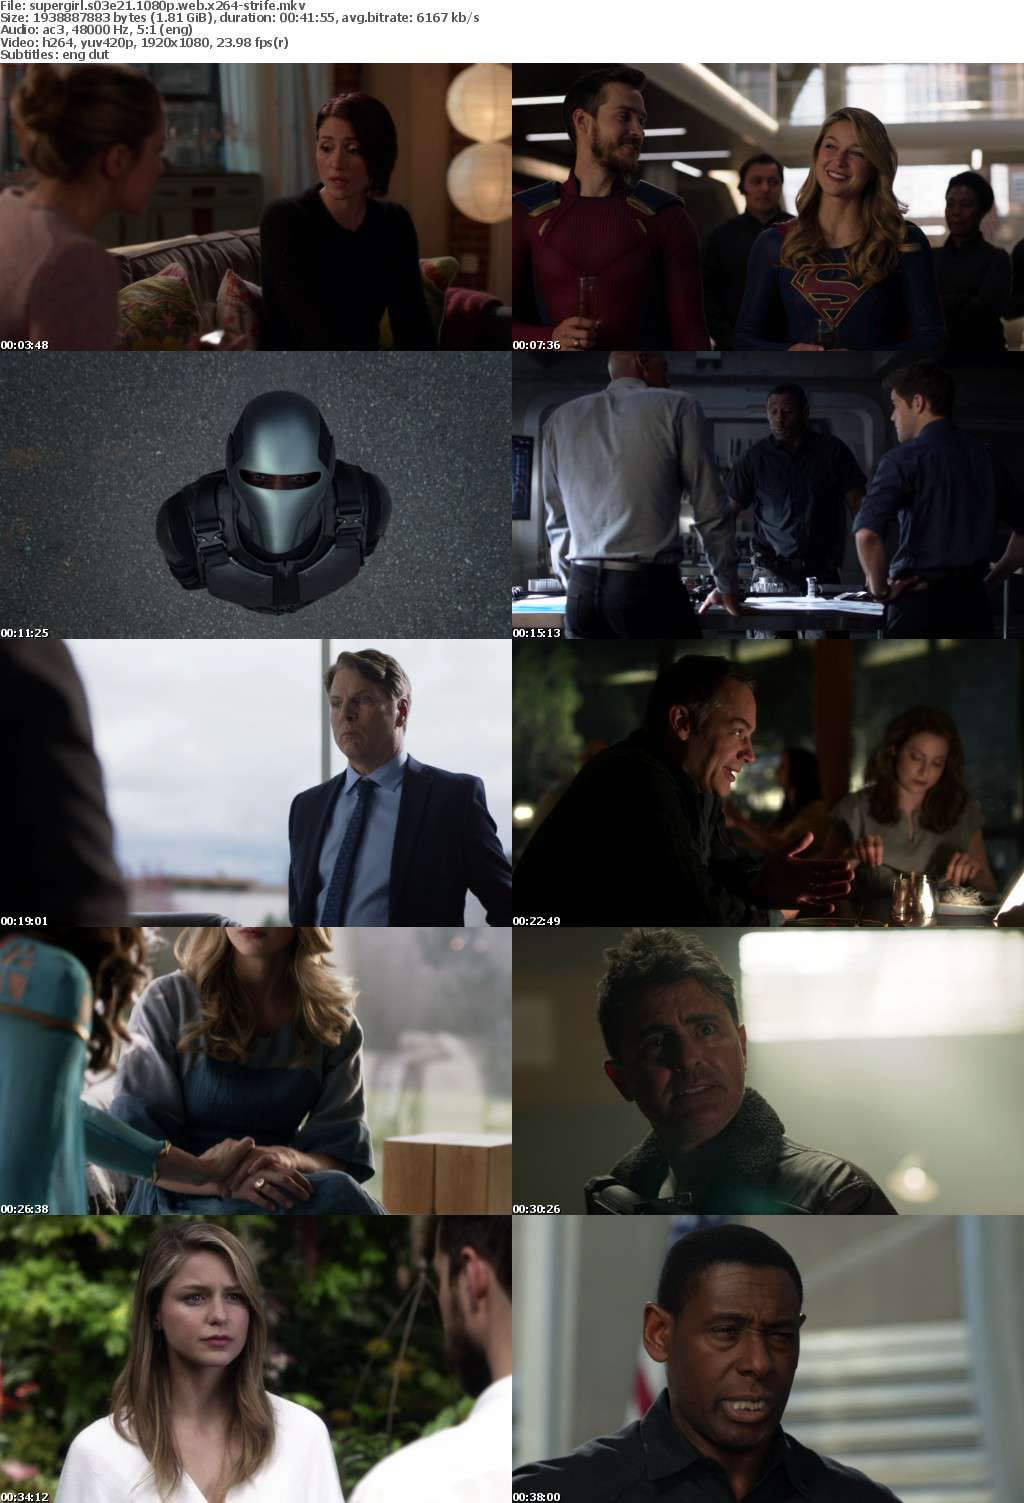 Supergirl S03E21 1080p WEB x264-STRiFE